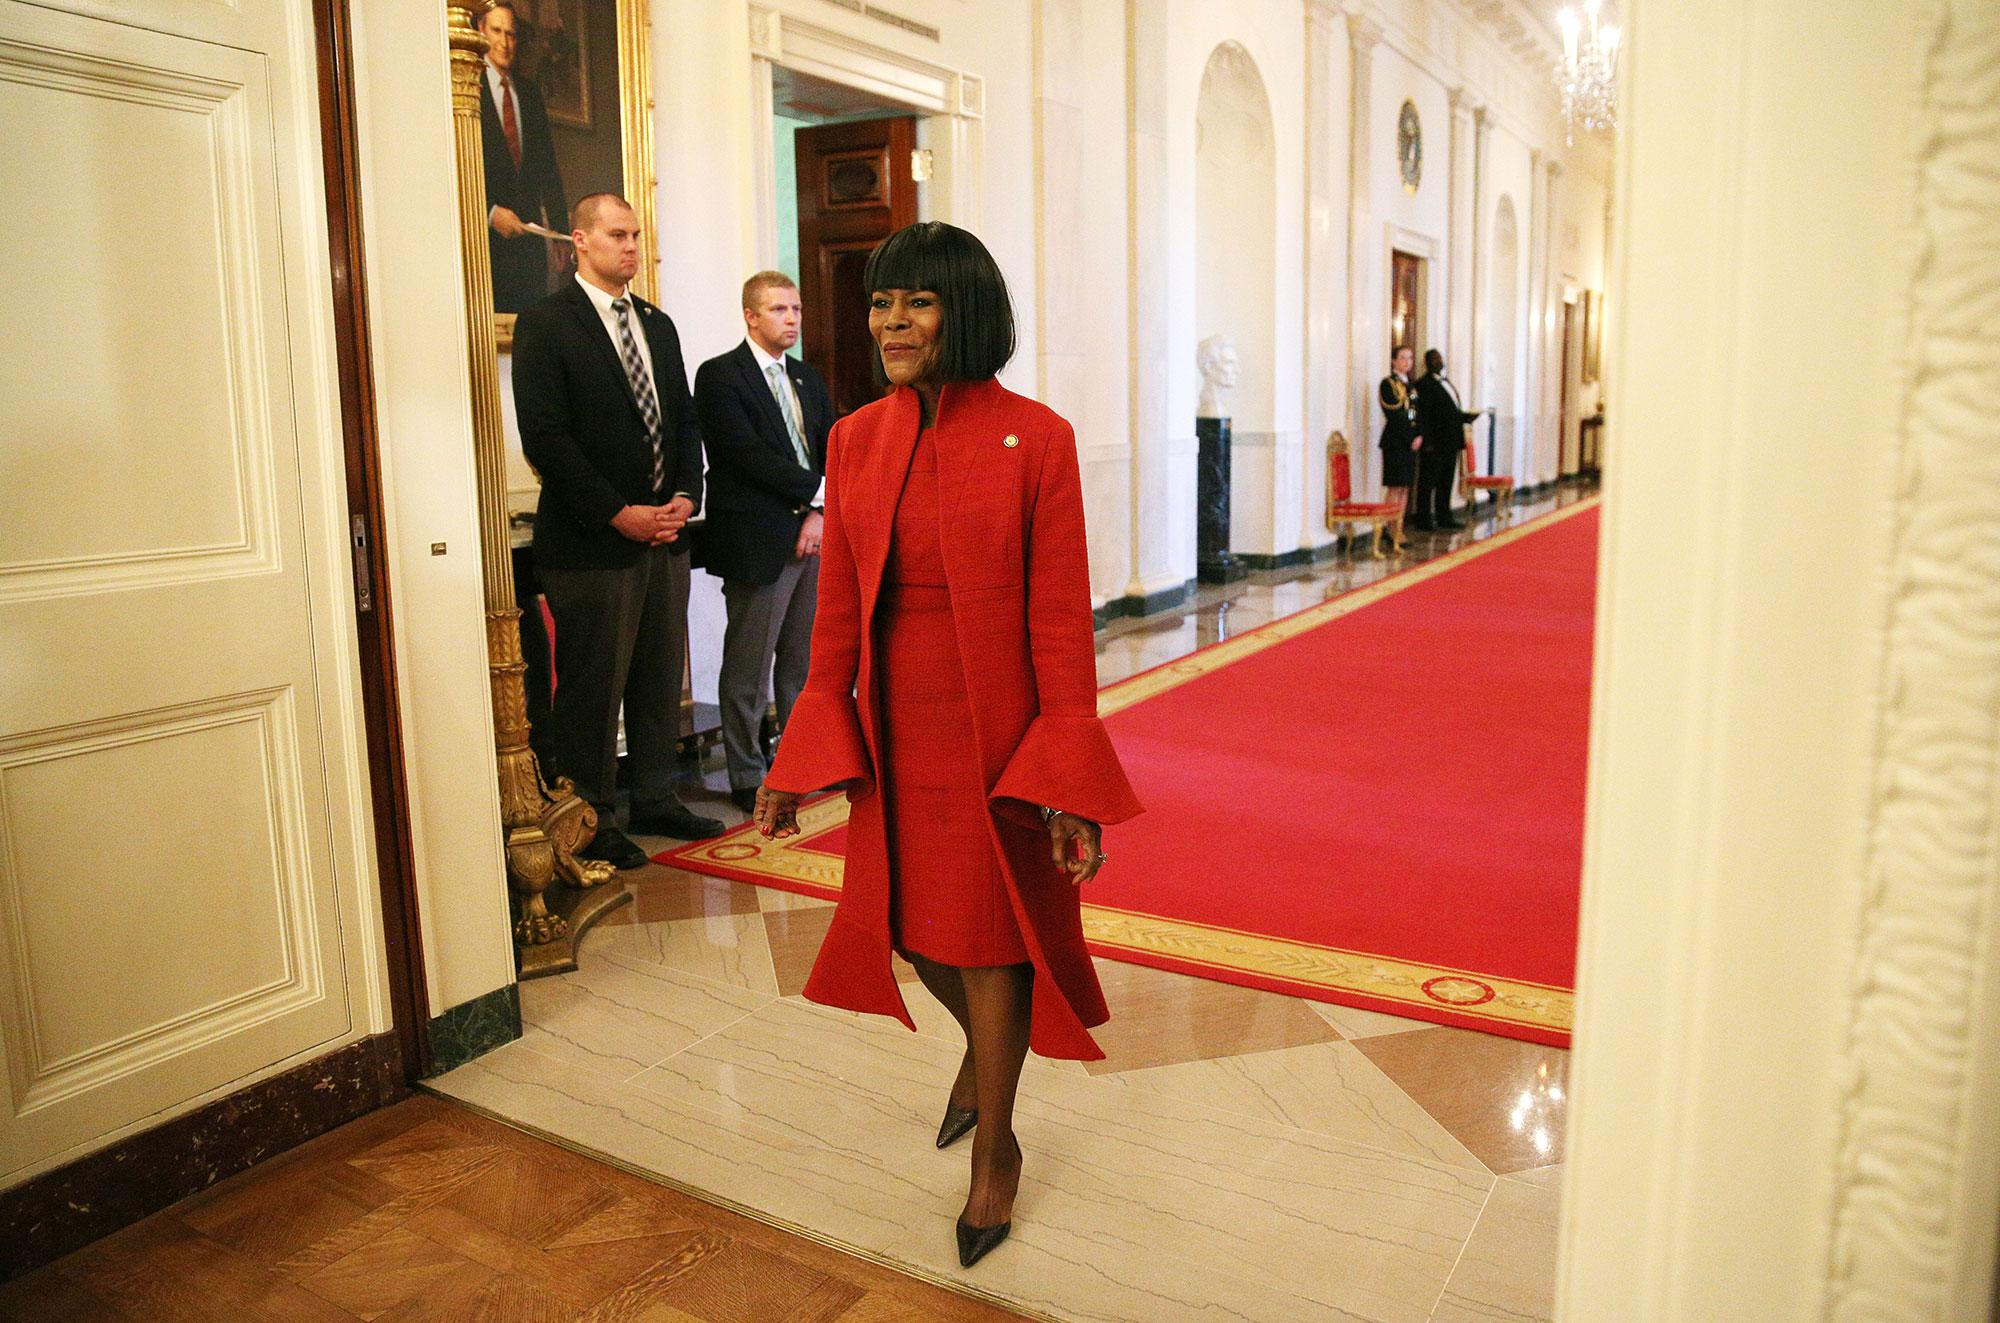 <p>Actress Cicely Tyson walks to her seat before a ceremony awarding the Presidential Medal of Freedom to various recipients in the East Room of the White House in Washington, U.S., Nov. 22, 2016. (Carlos Barria/Reuters) </p>